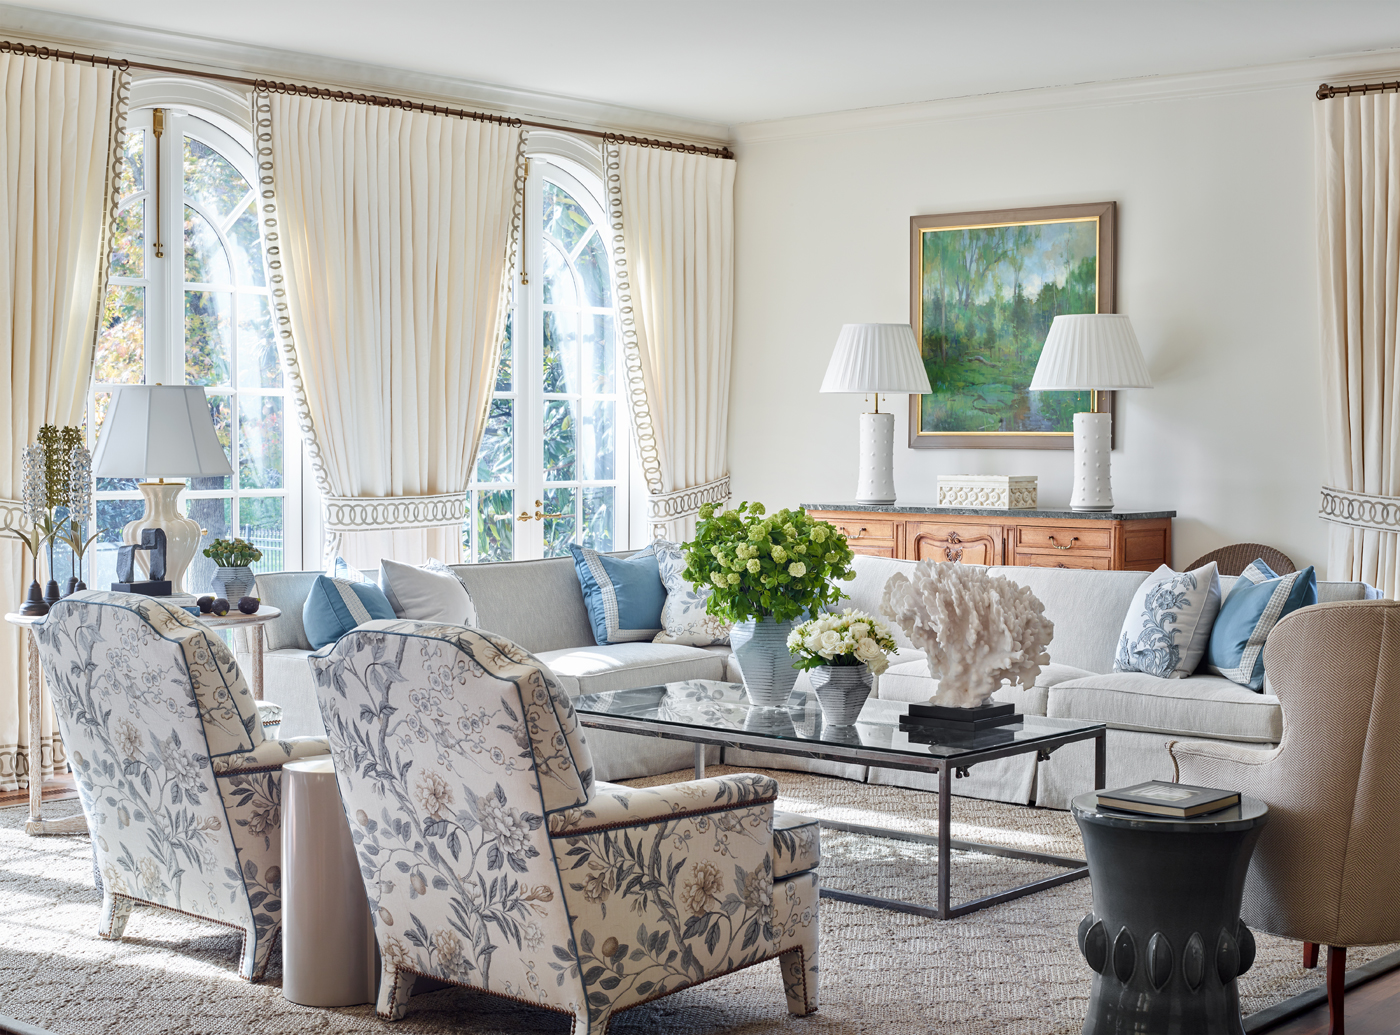 GP & J Baker floral fabric on tight-back arm chairs in family room; linen window treatments & French doors | Savage Interior Design